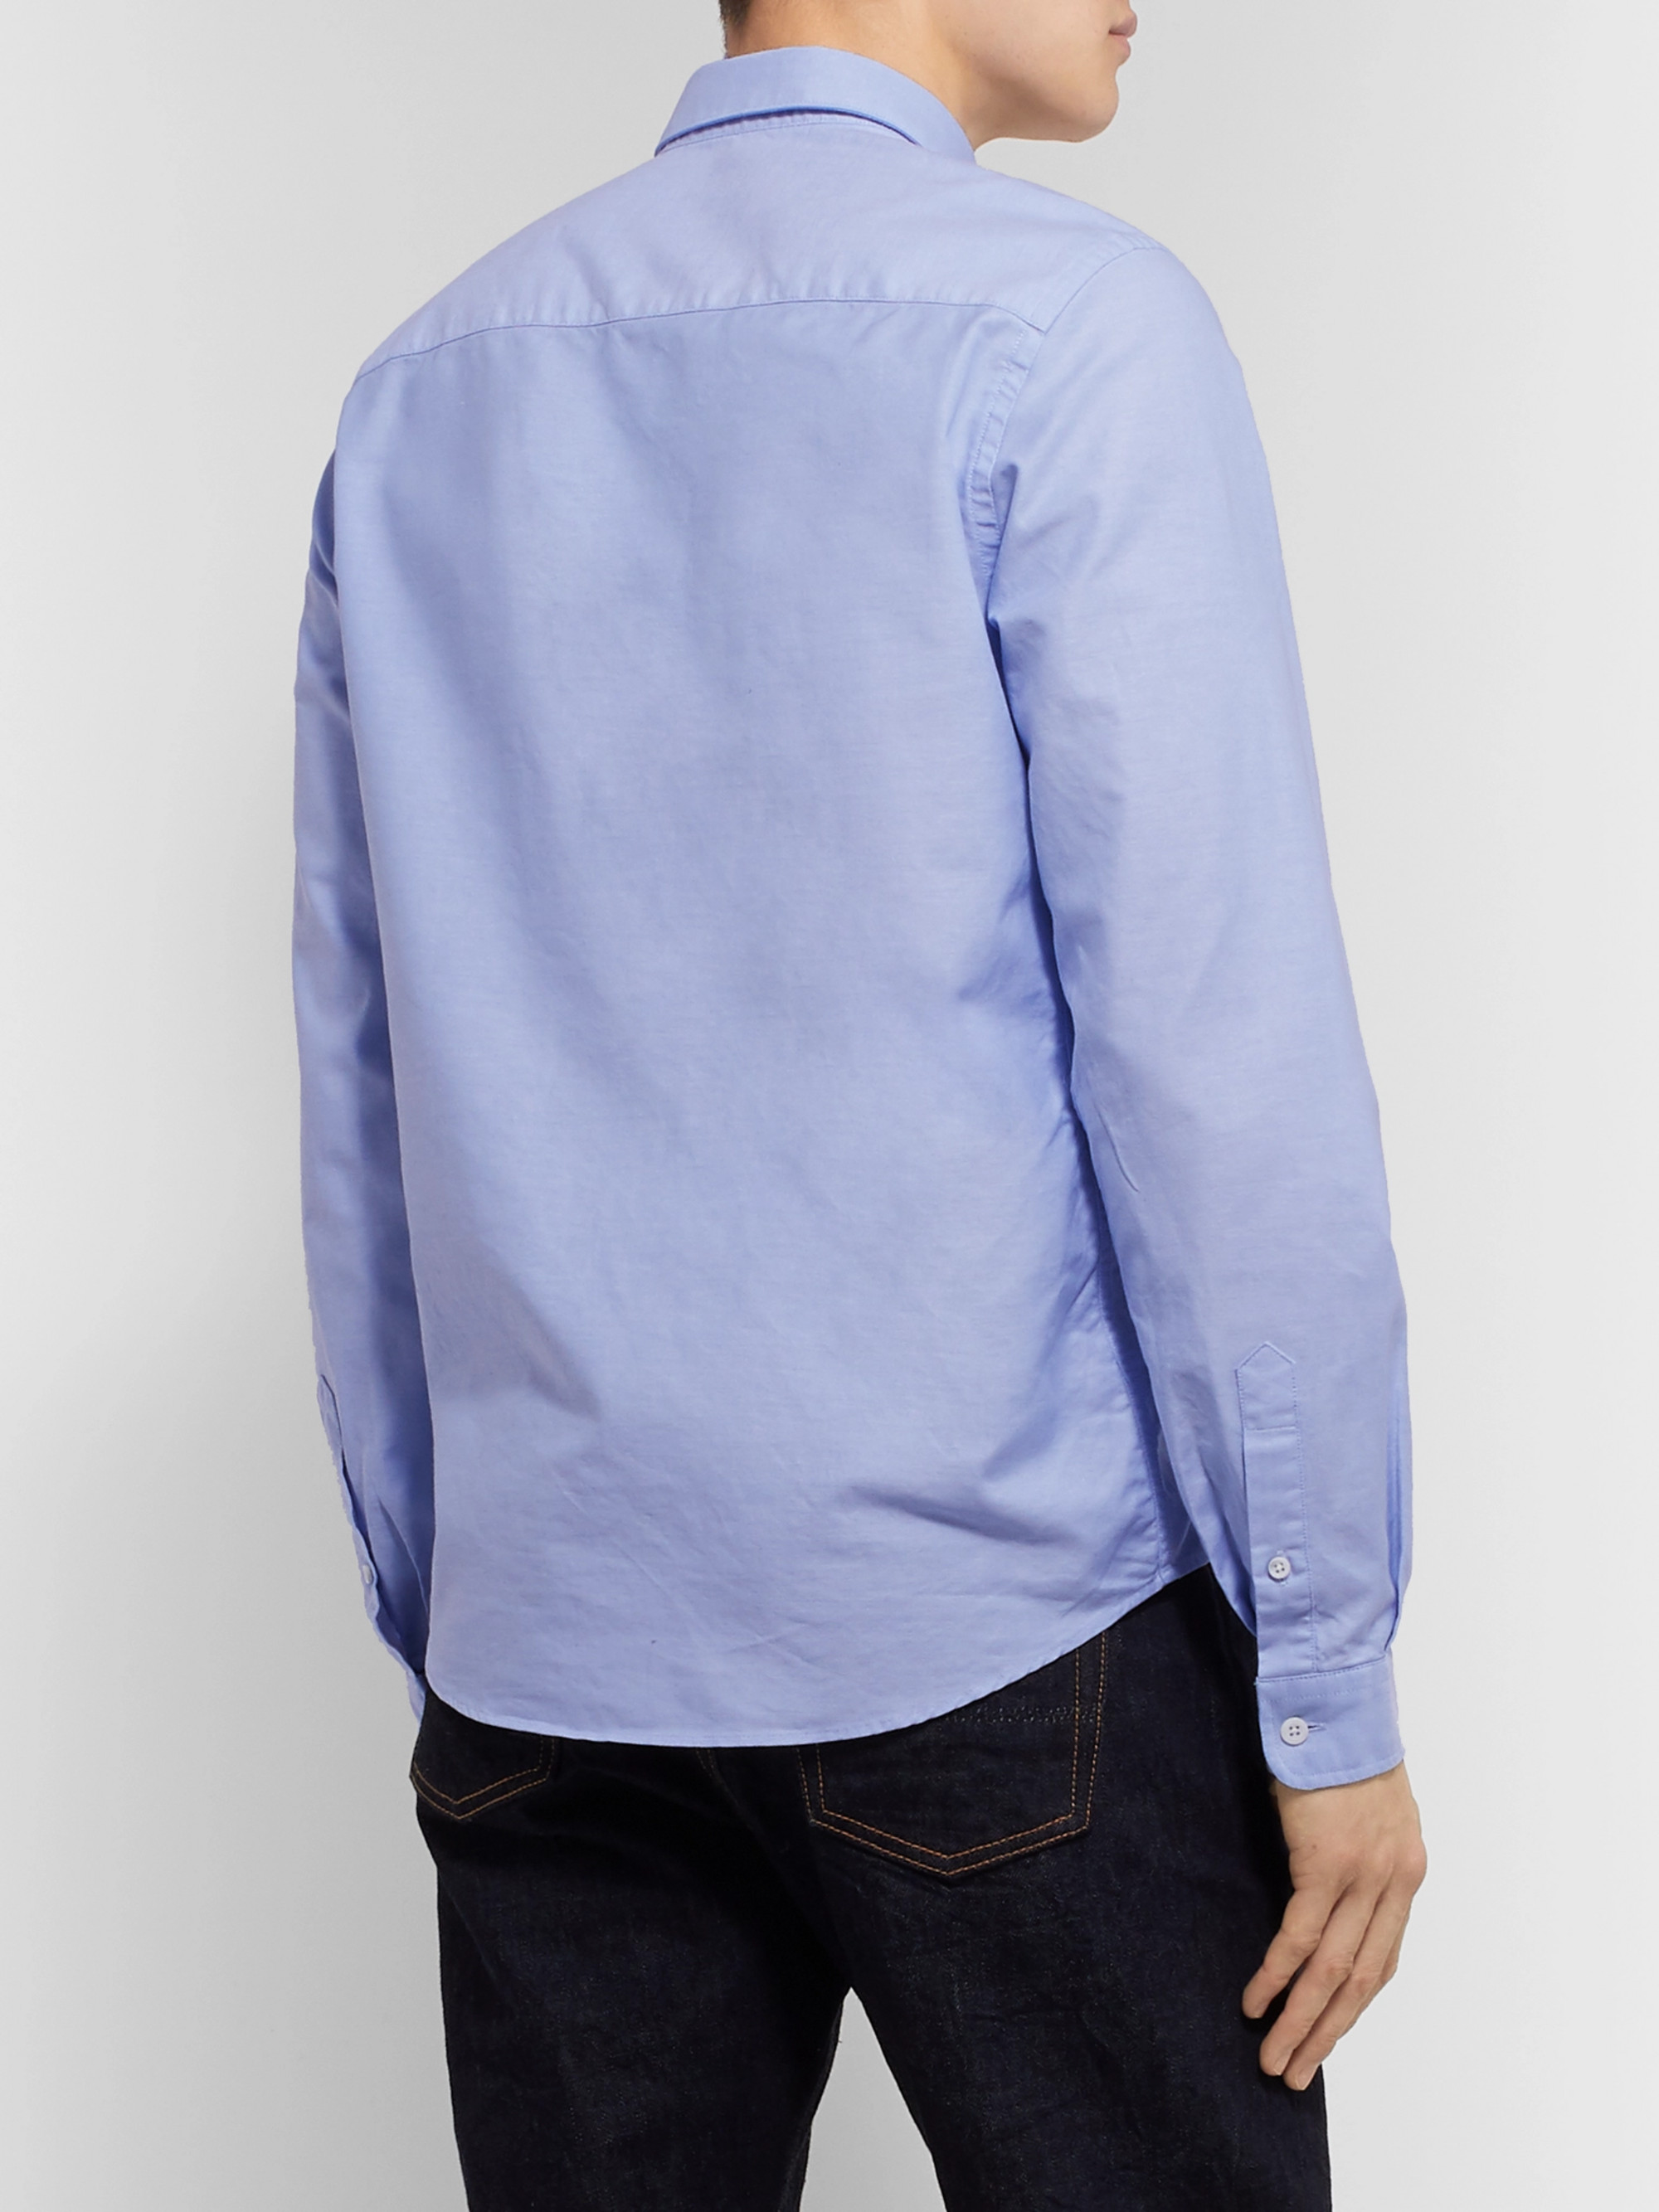 AMI Slim-Fit Logo-Appliquéd Button-Down Collar Cotton Oxford Shirt